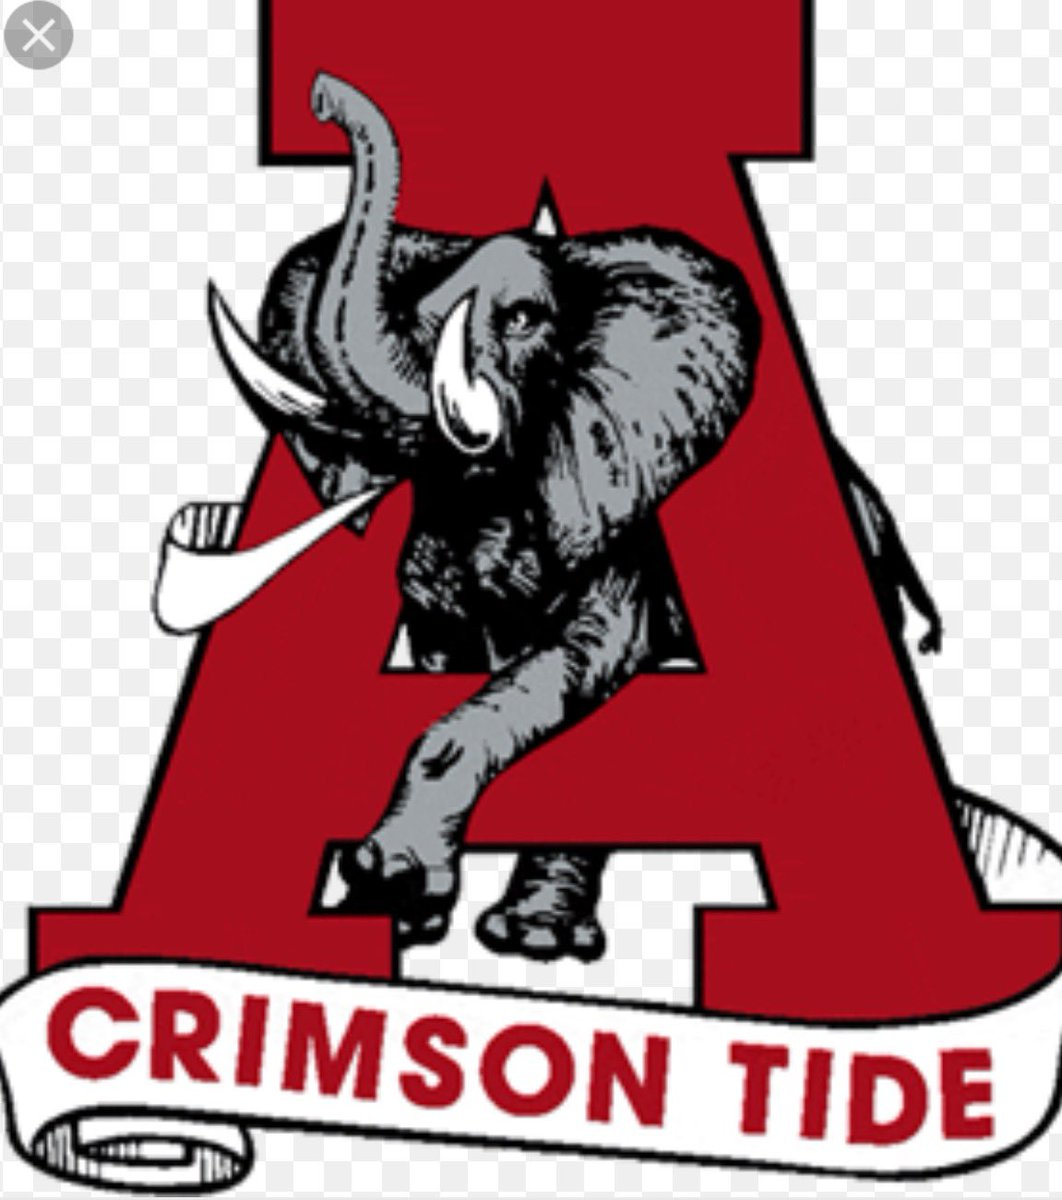 I thought Auburn was supposed to play us today. Where they at? #RollTide